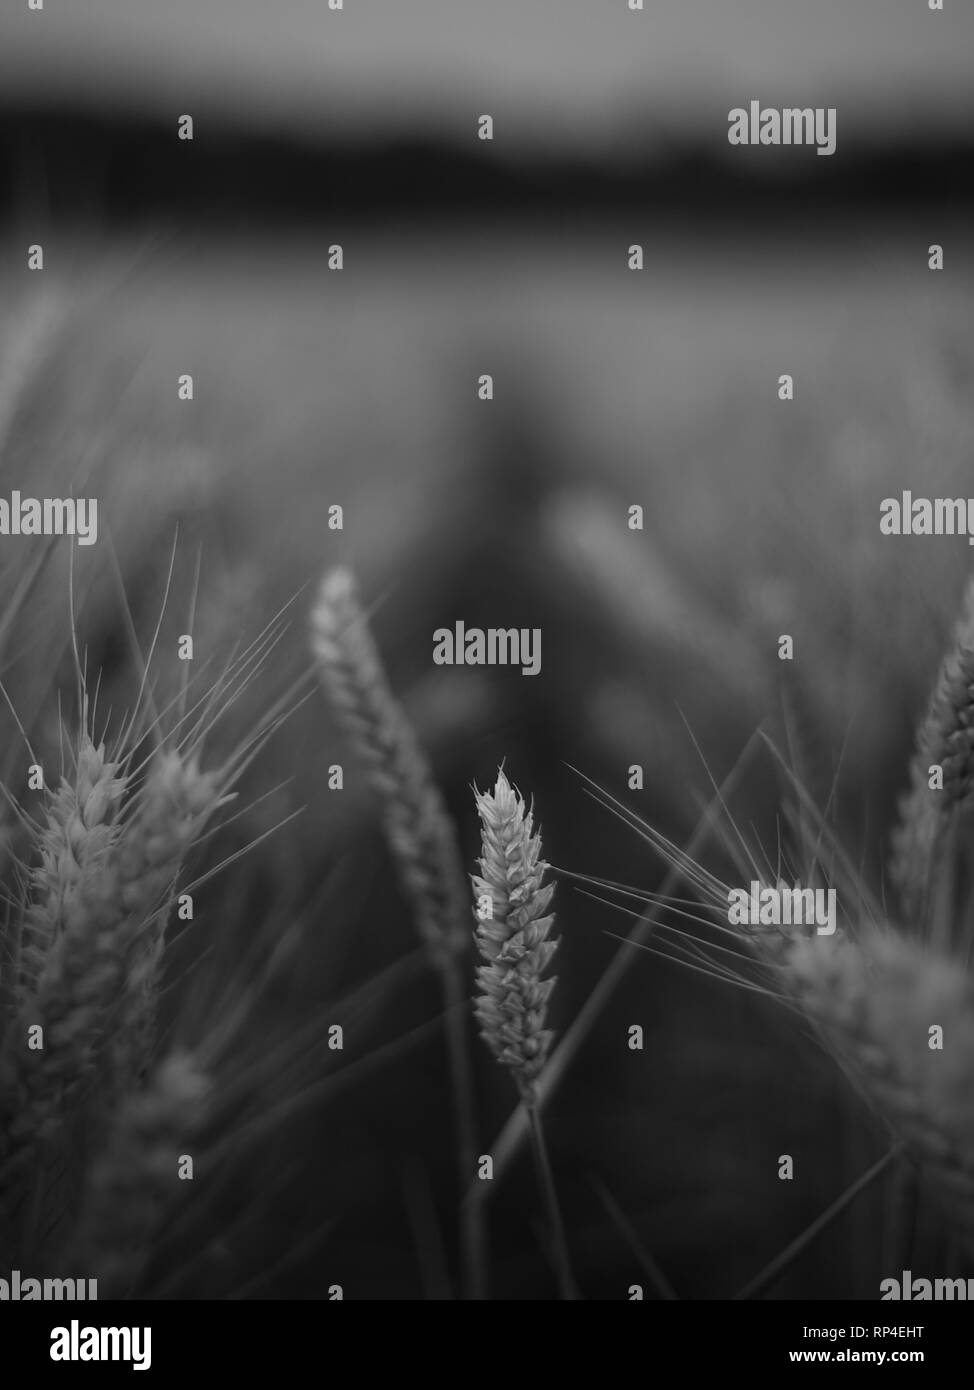 Close up black and white wheat field. - Stock Image